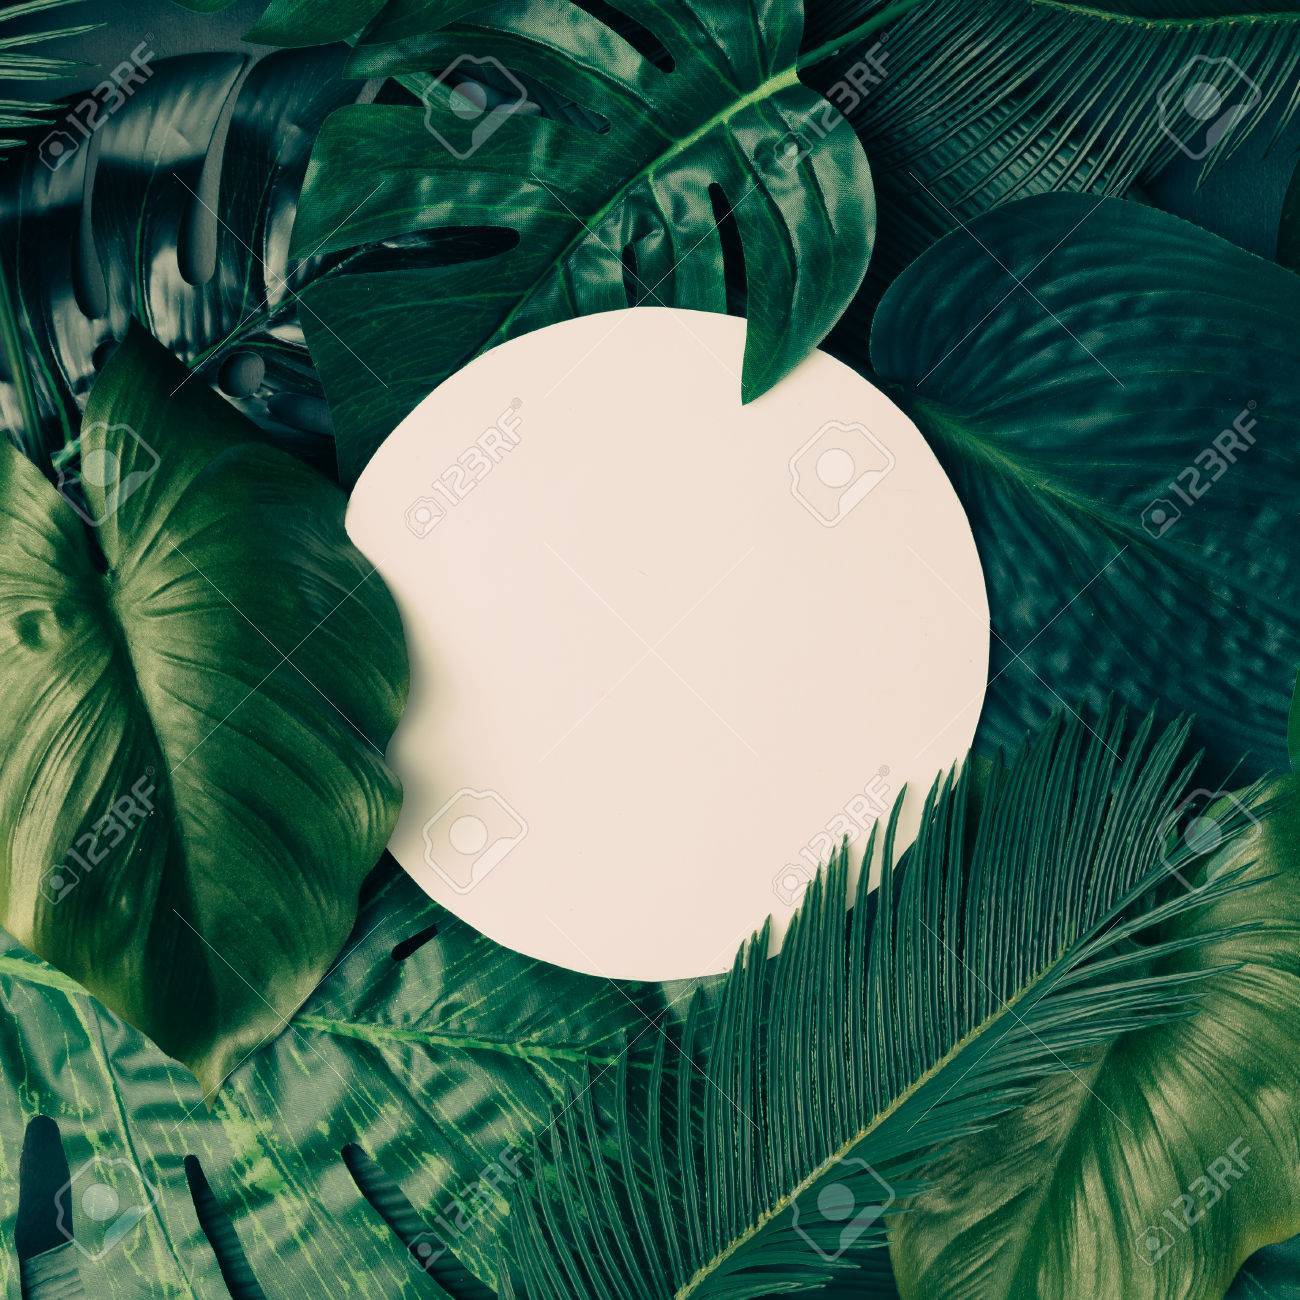 Creative Tropical Green Leaves Layout With Copy Space Nature Stock Photo Picture And Royalty Free Image Image 76156382 When island inspirations come a calling, answer back with this lush and tropical setting. creative tropical green leaves layout with copy space nature